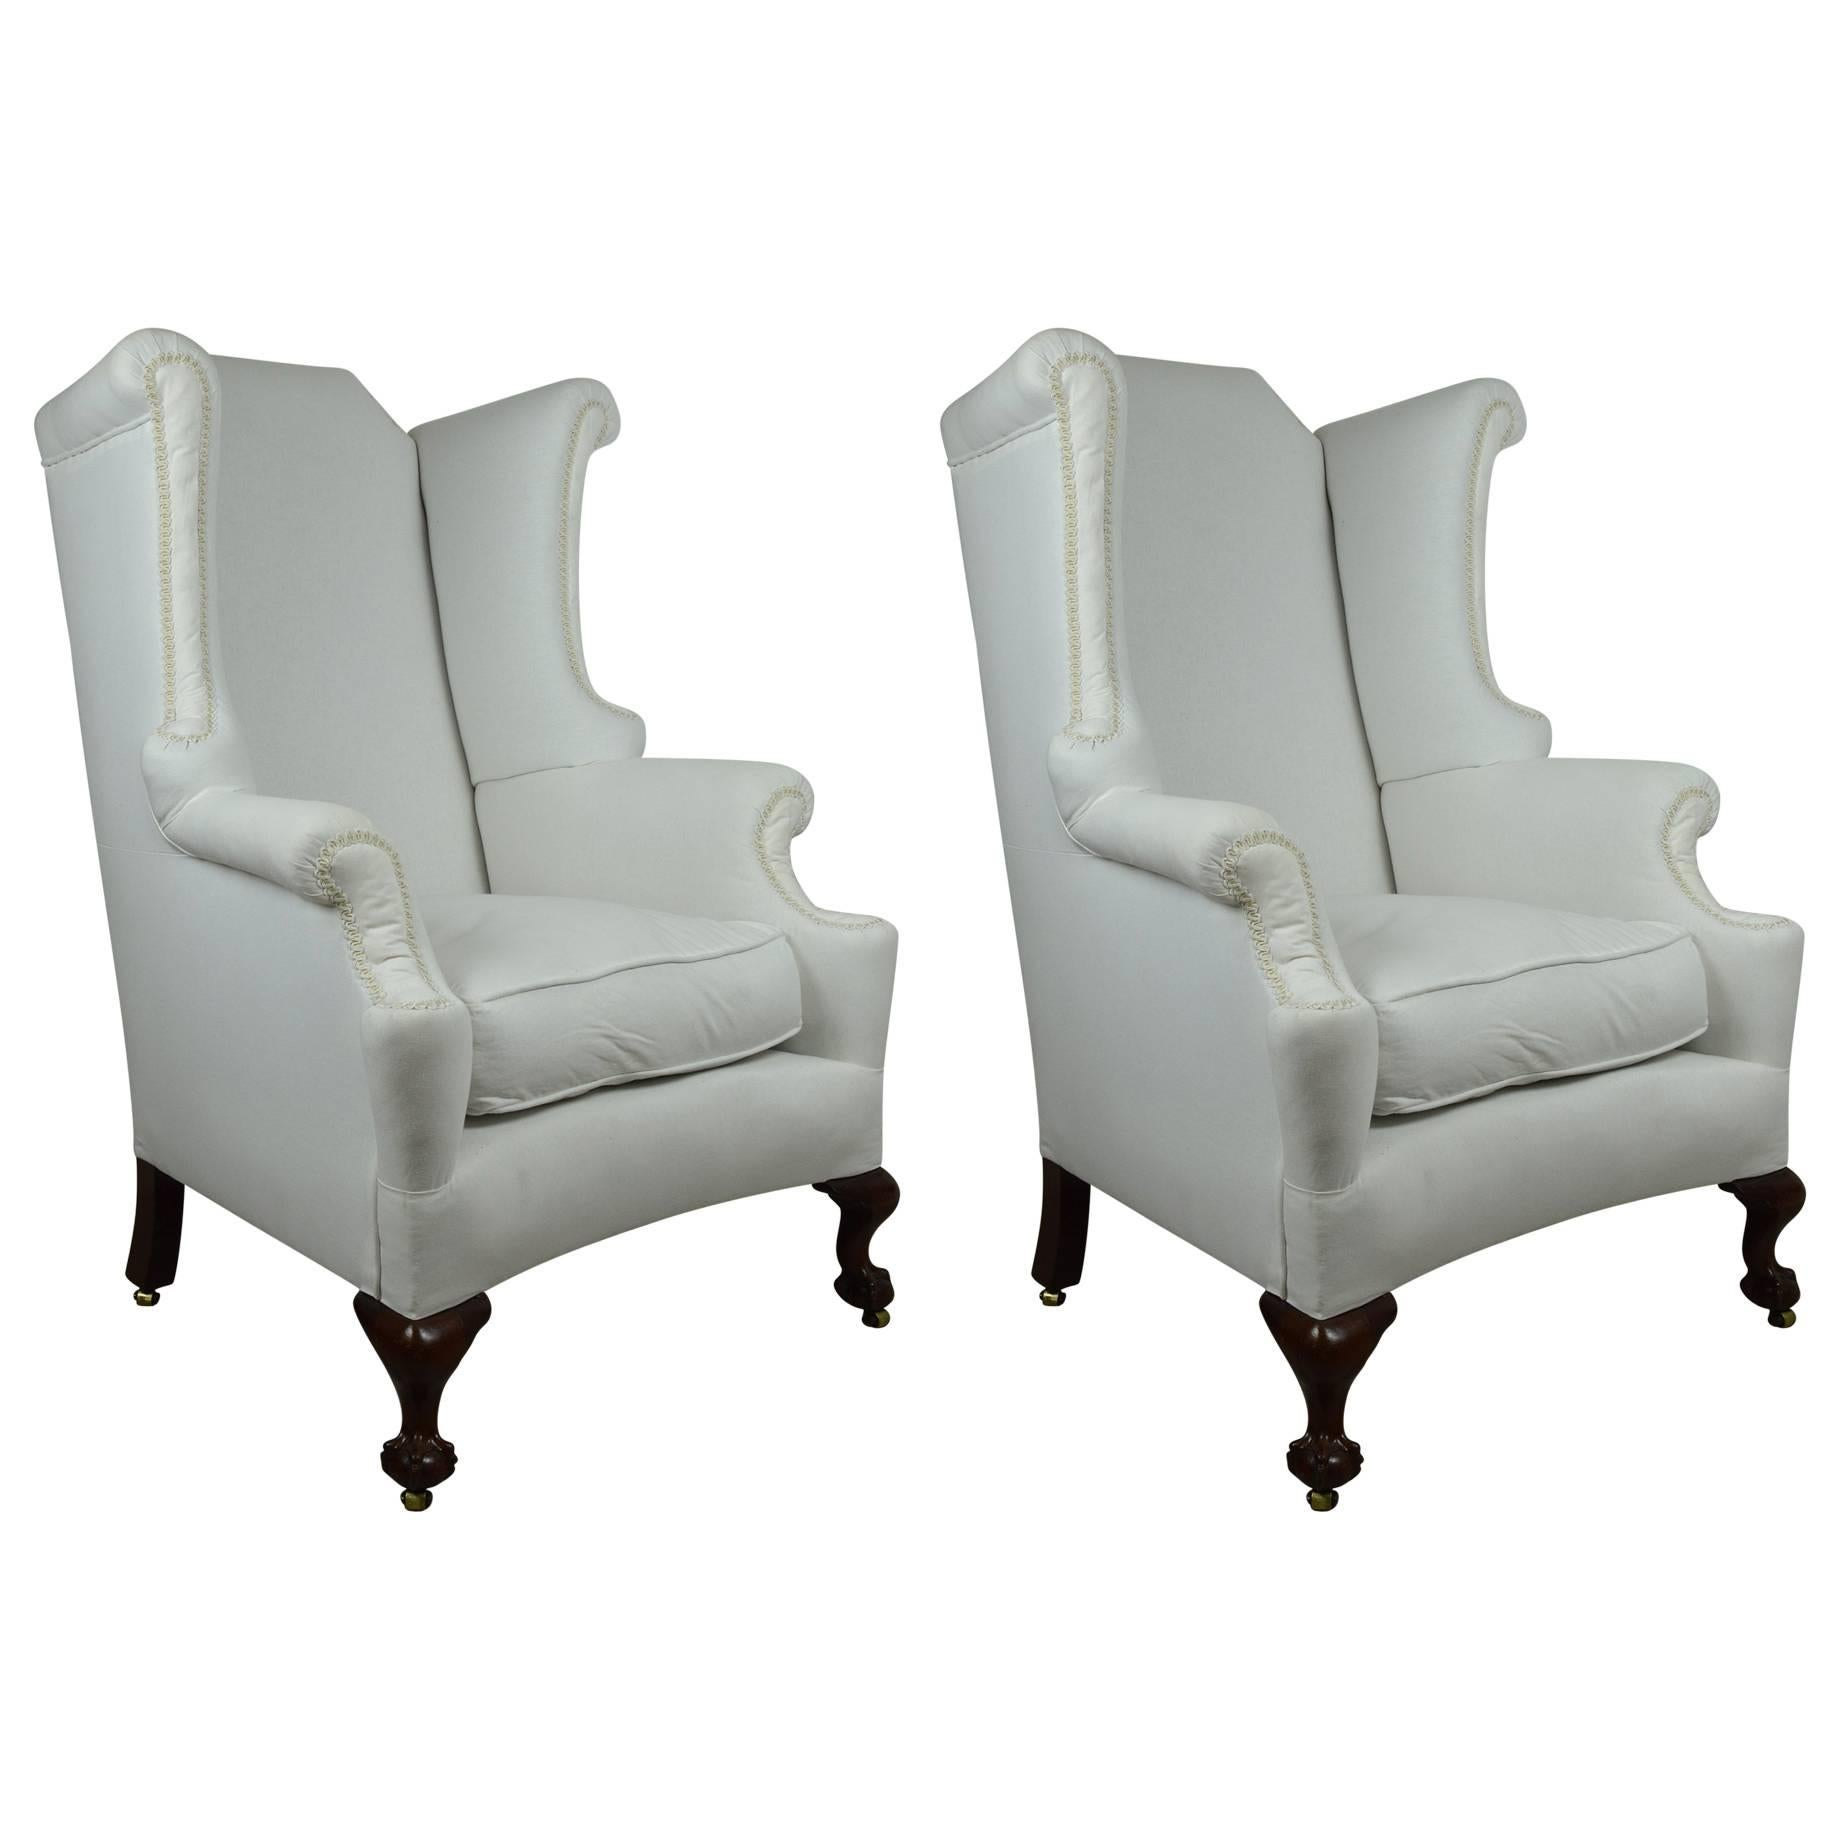 pair of antique georgian style wingback chairs with mahogany claw and ball feet